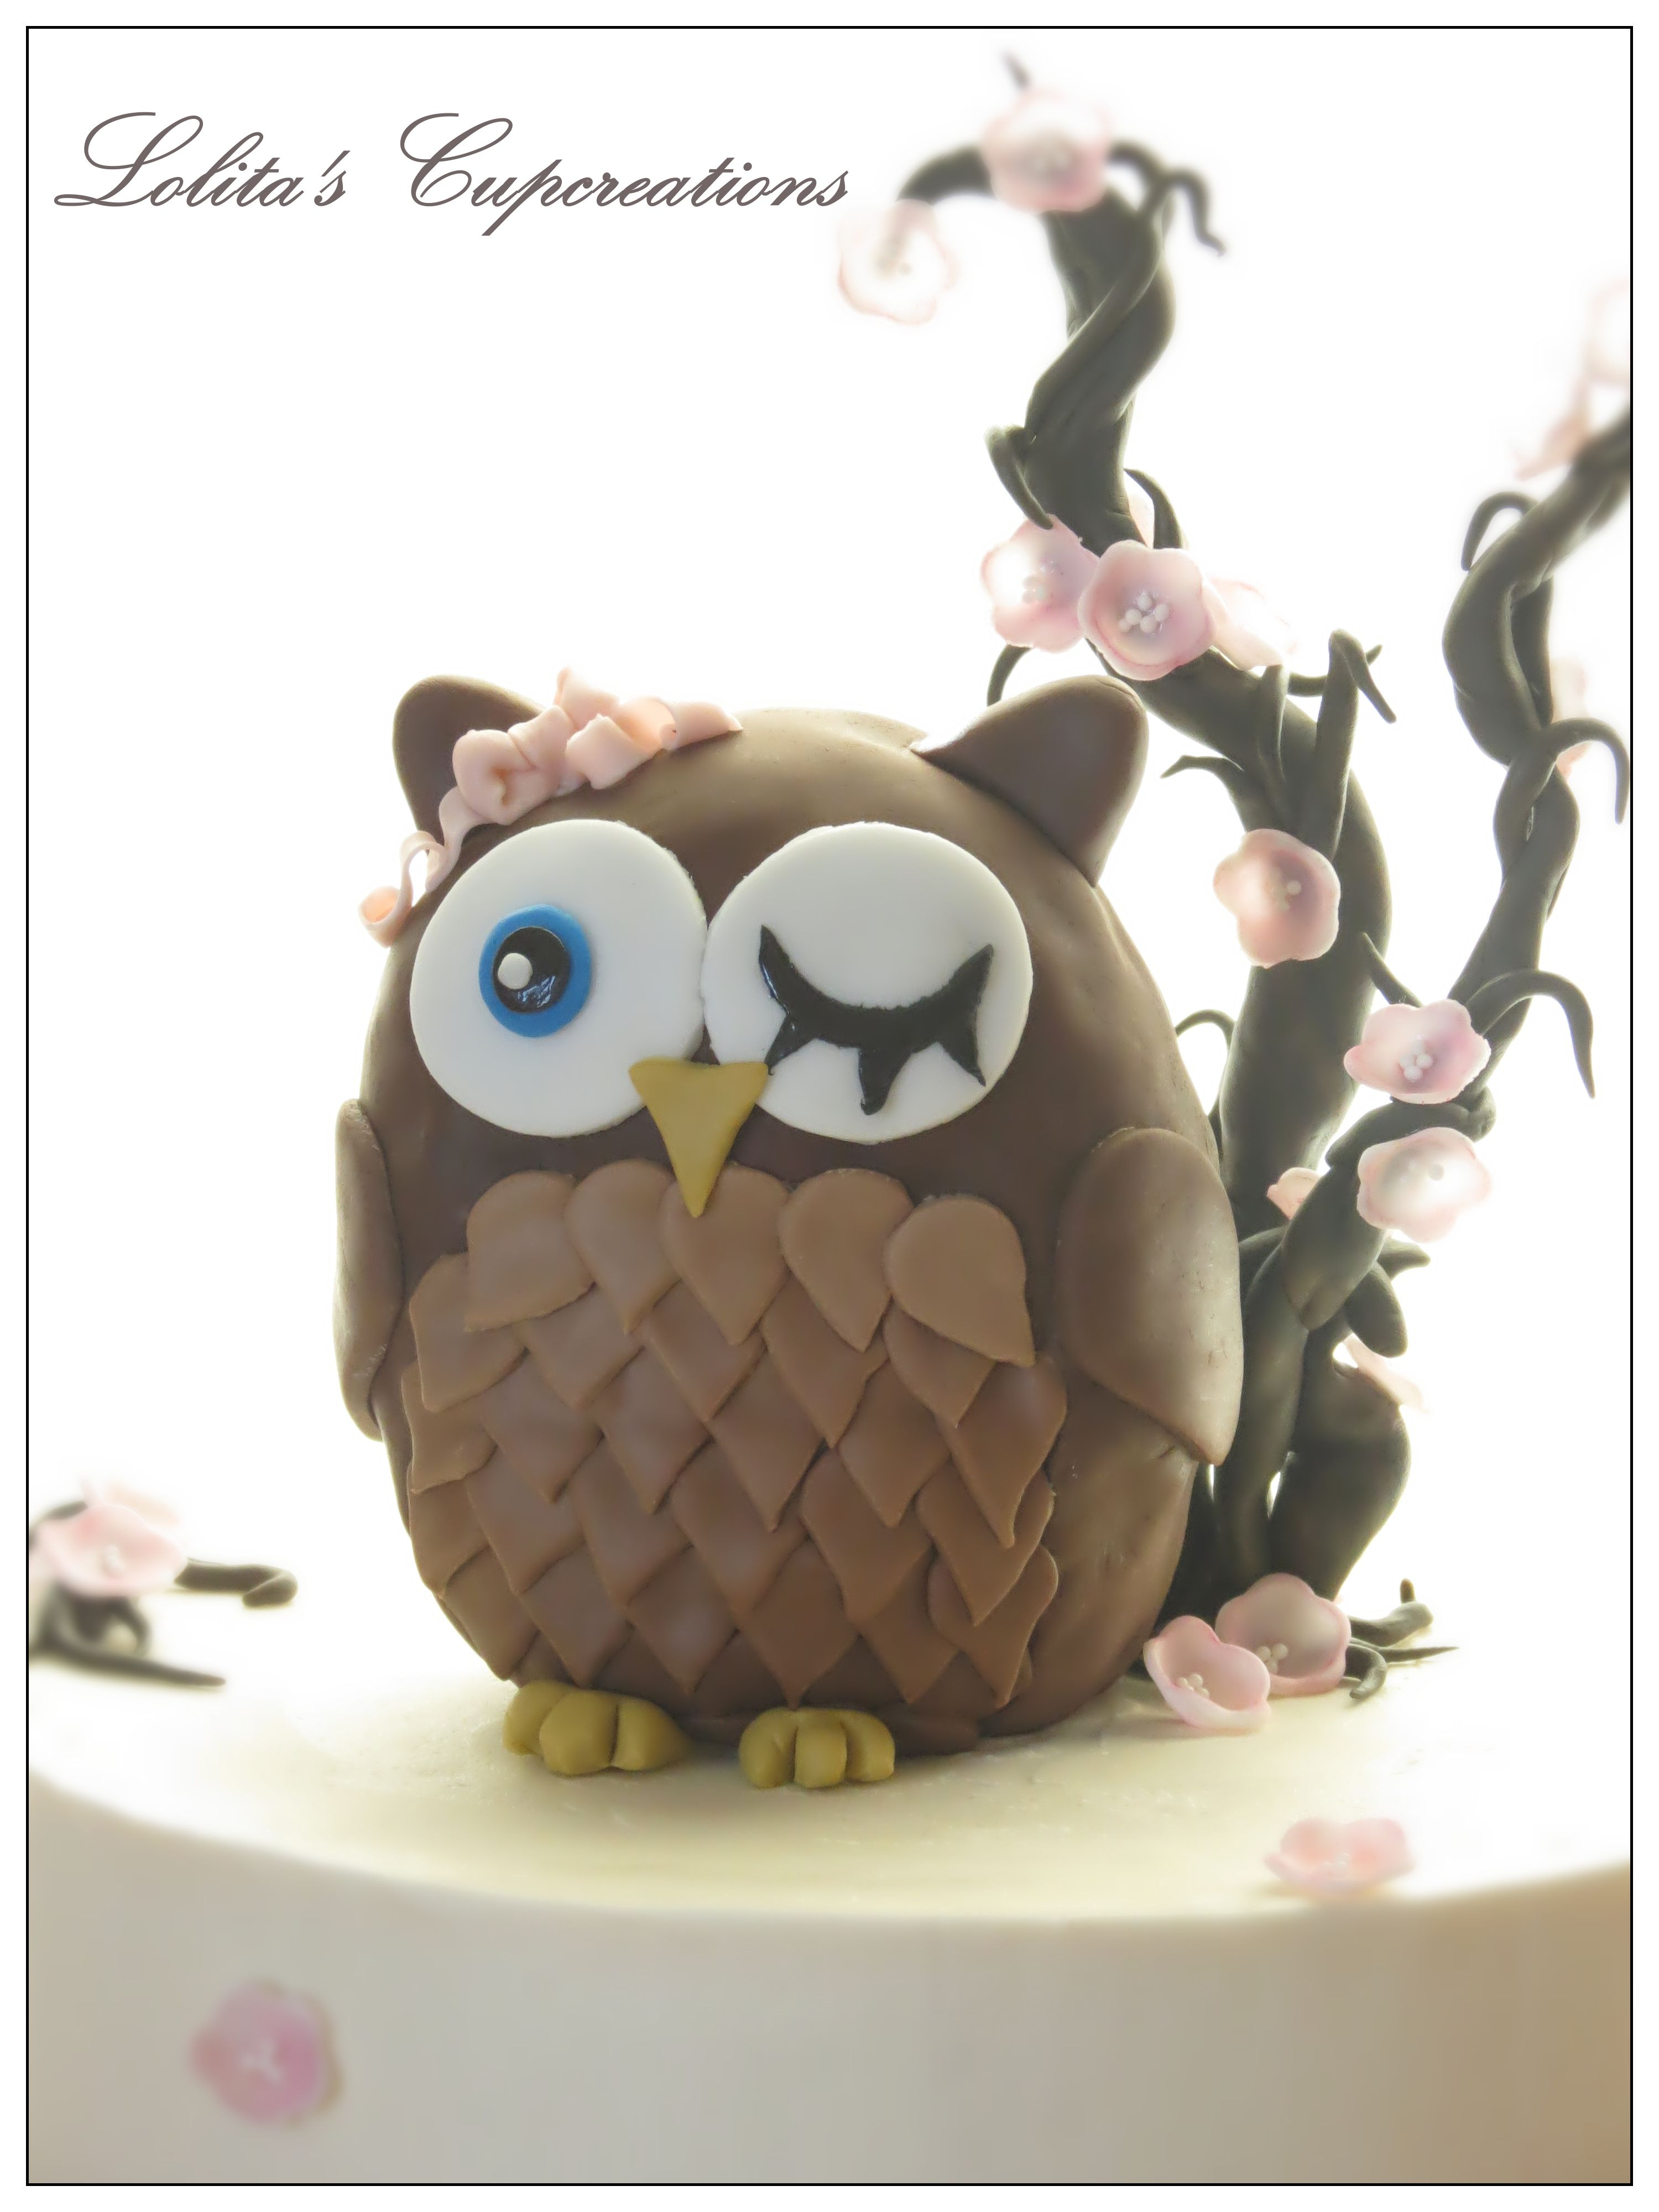 Lolita's Cupcreations (Owl and Cherry Blossoms inspired cake)